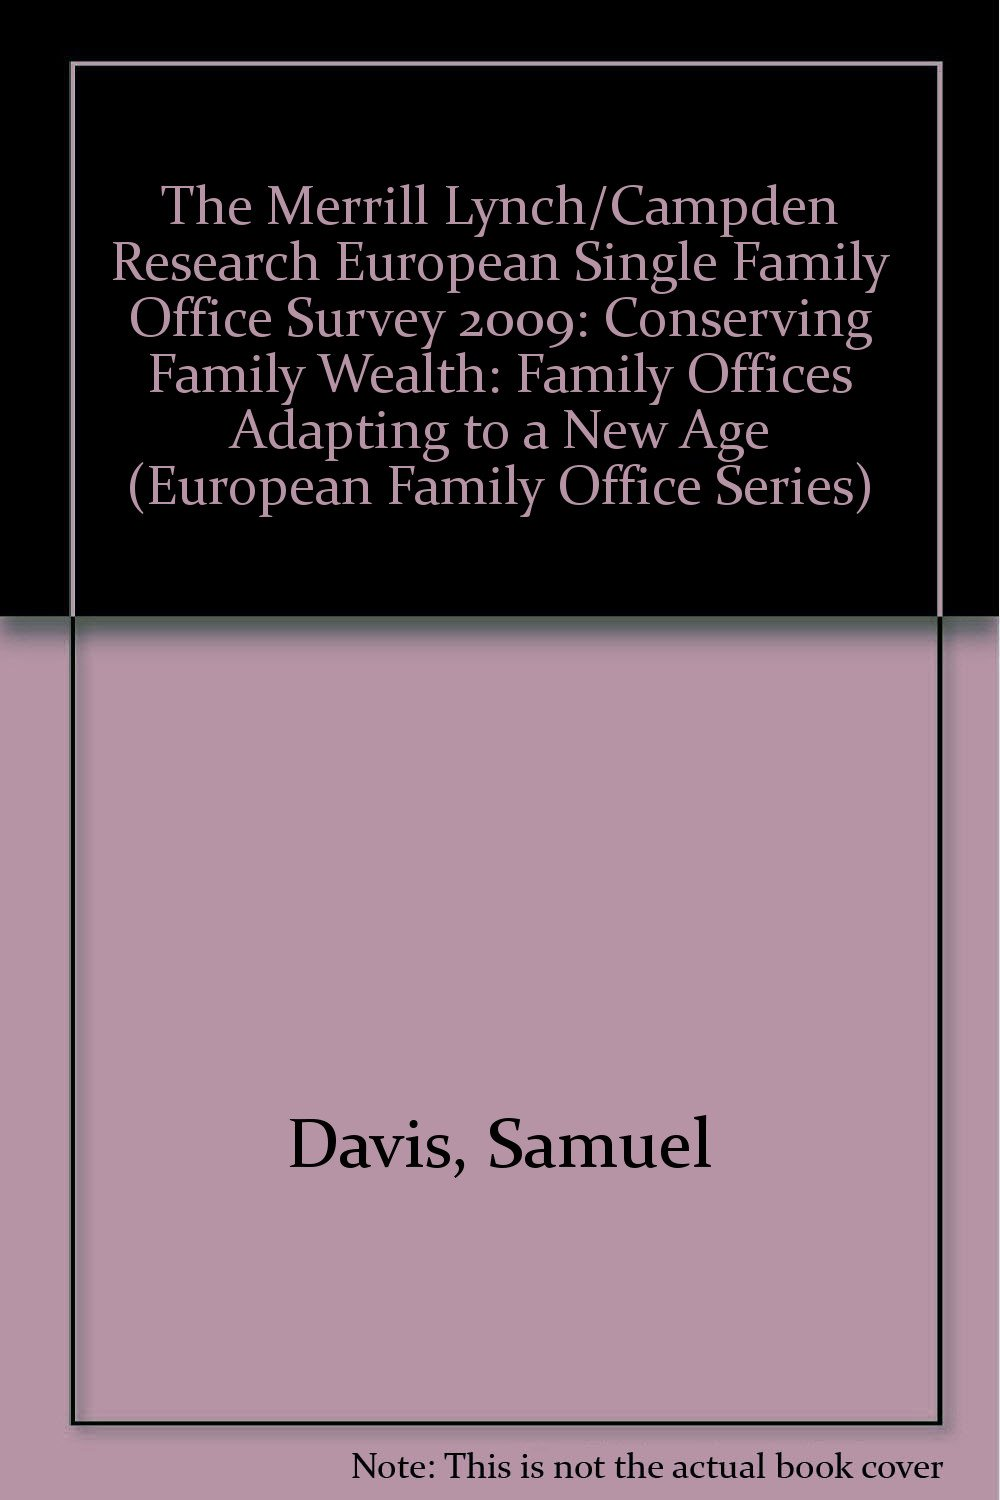 The Merrill Lynch/Campden Research European Single Family Office Survey 2009: Conserving Family Wealth: Family Offices Adapting to a New Age (European Family Office Series)